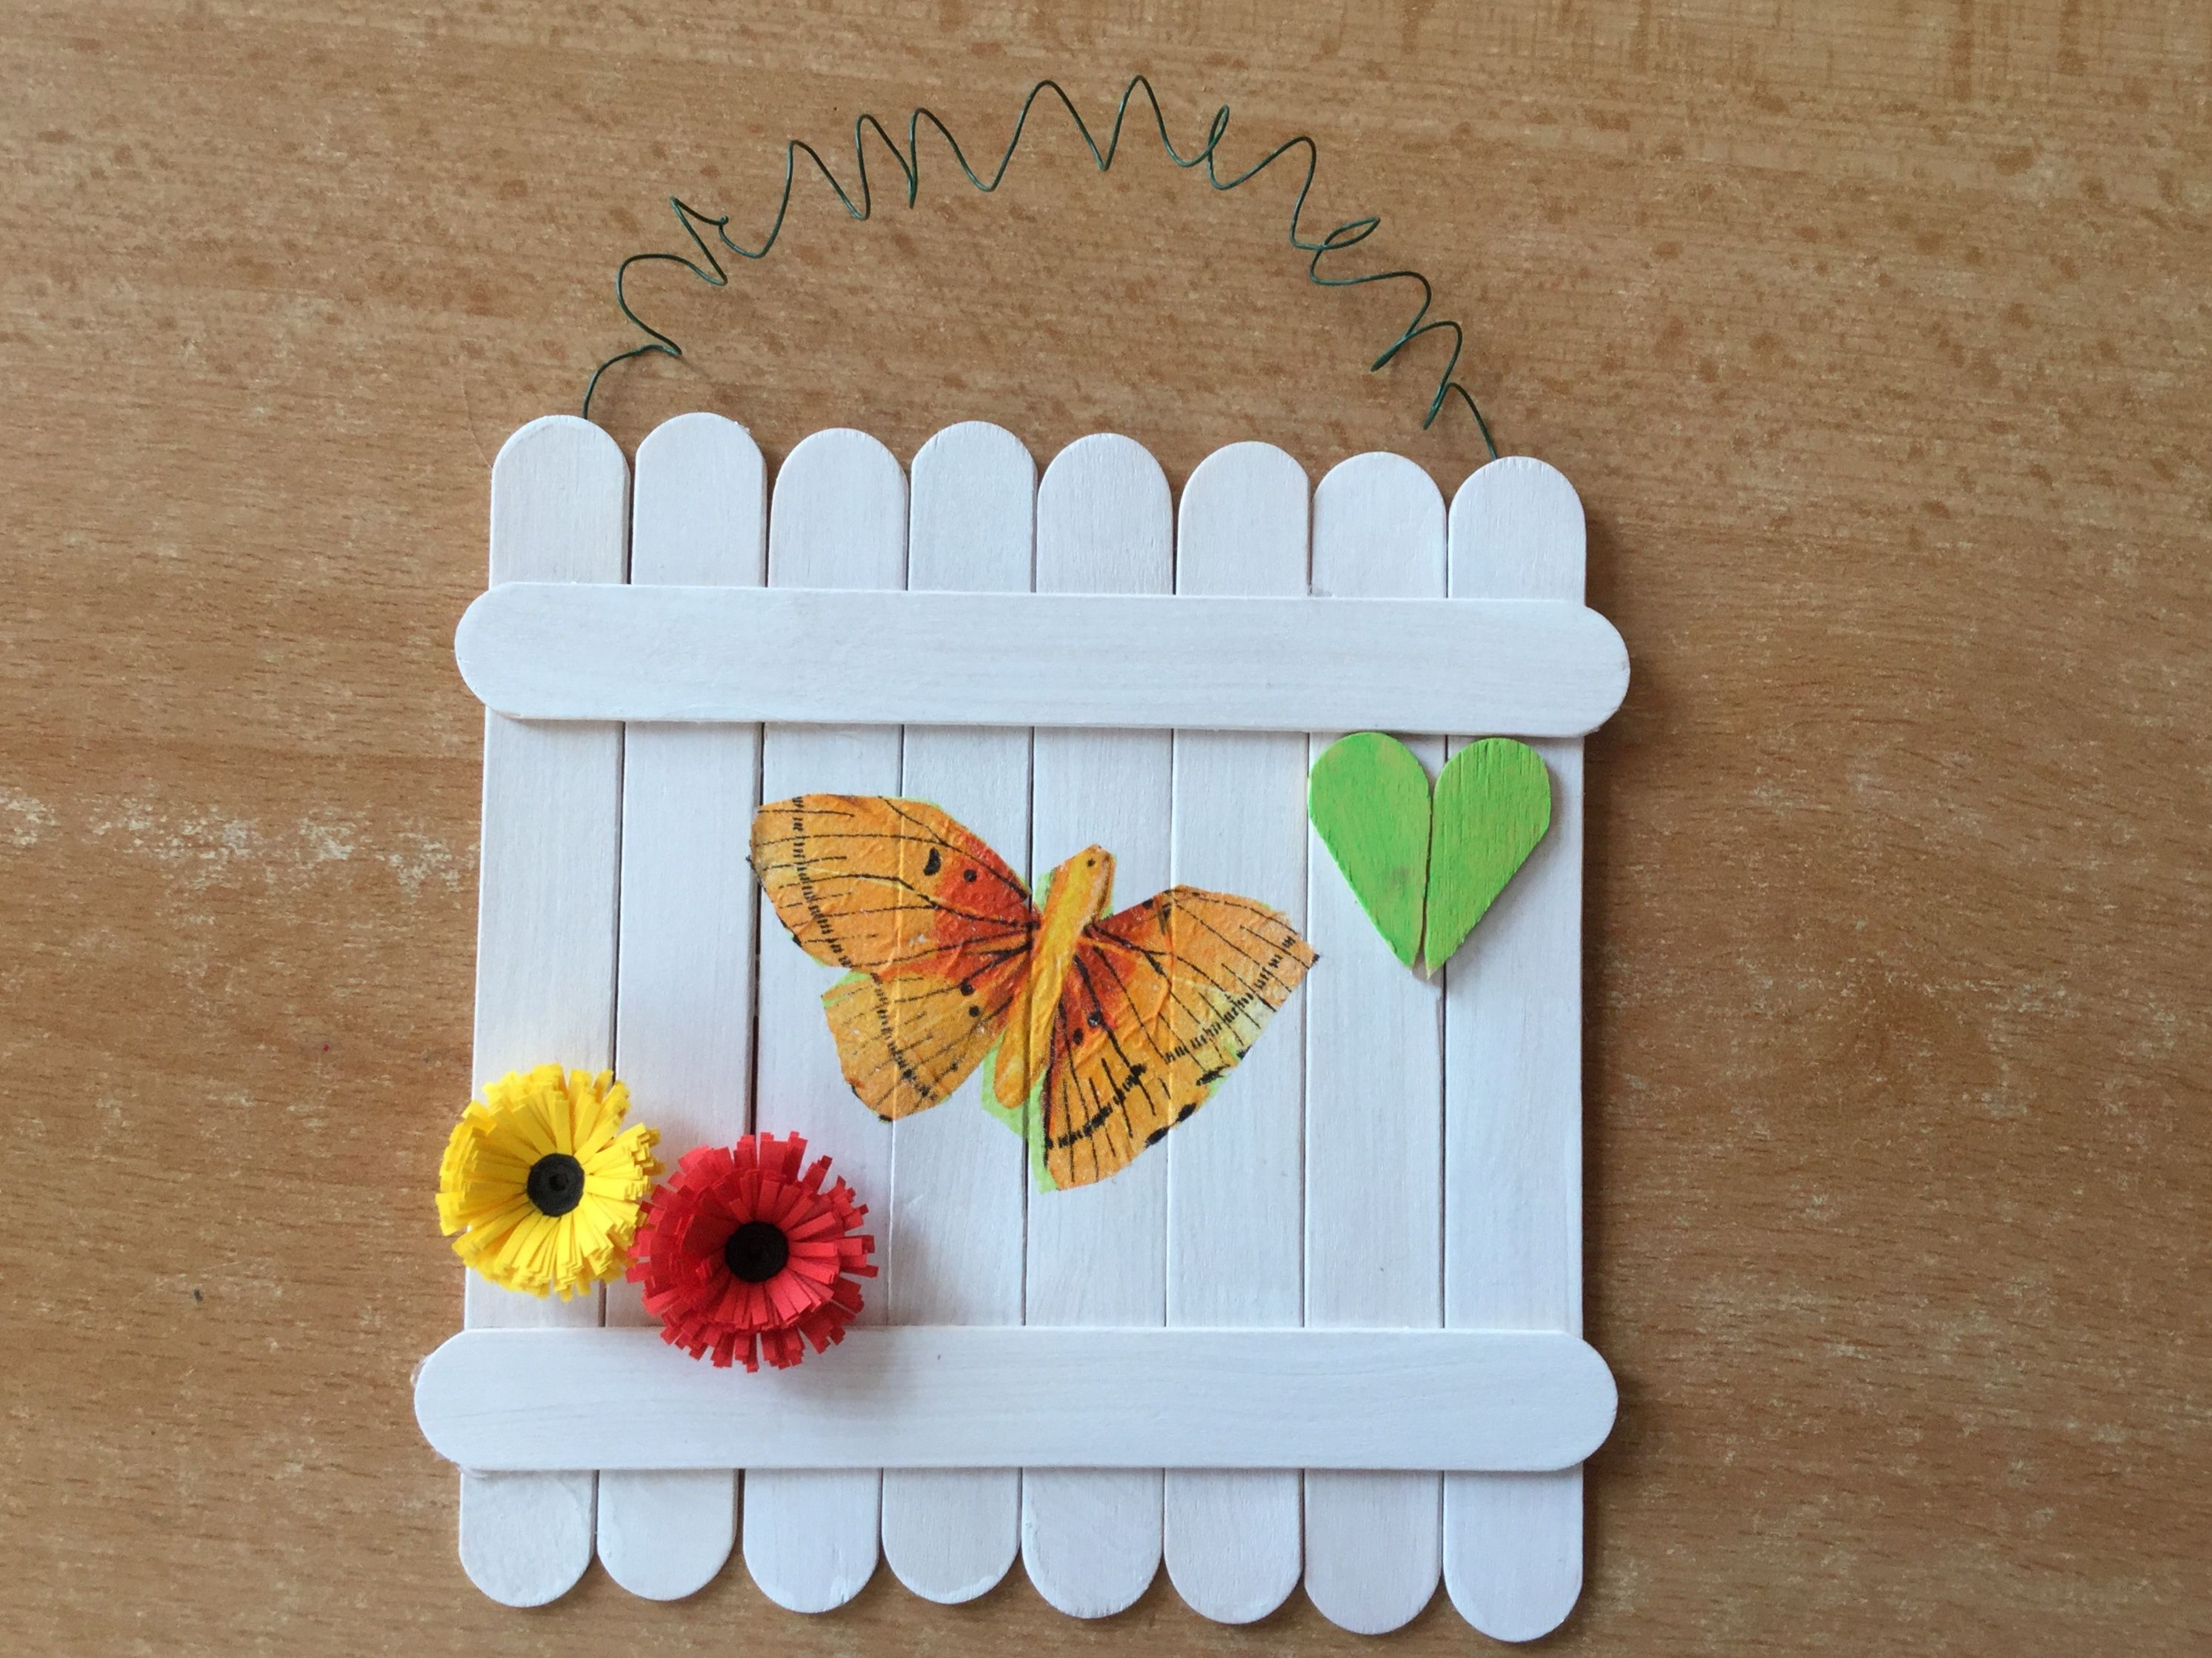 Popsicle stick art #craftsforkids #crafts  | Popsicle Stick